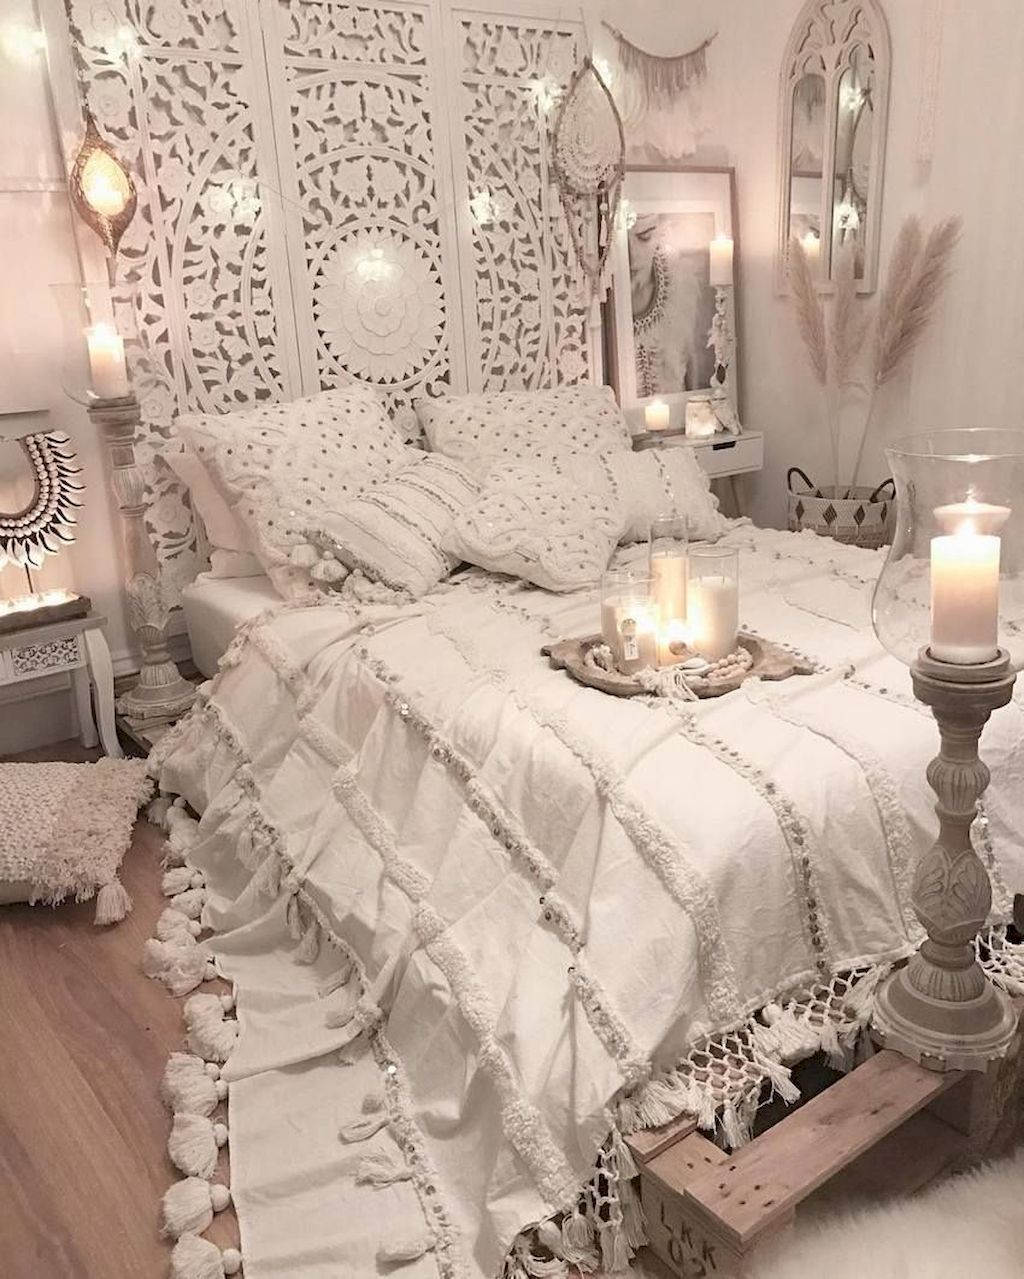 Bohemian Style Bedroom decoration Ideas images